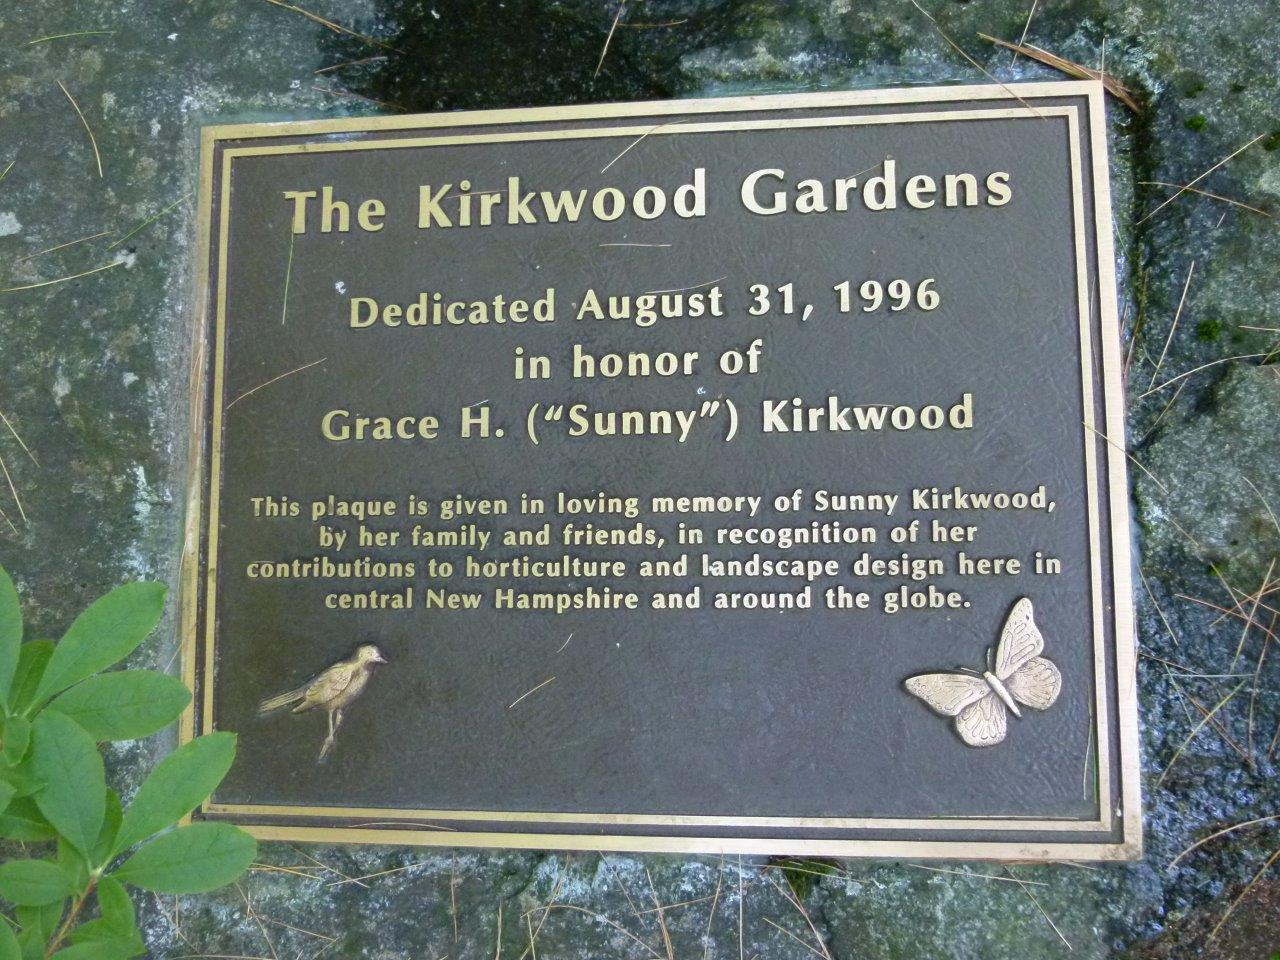 Kirkwood Gardens Dedication Plaque